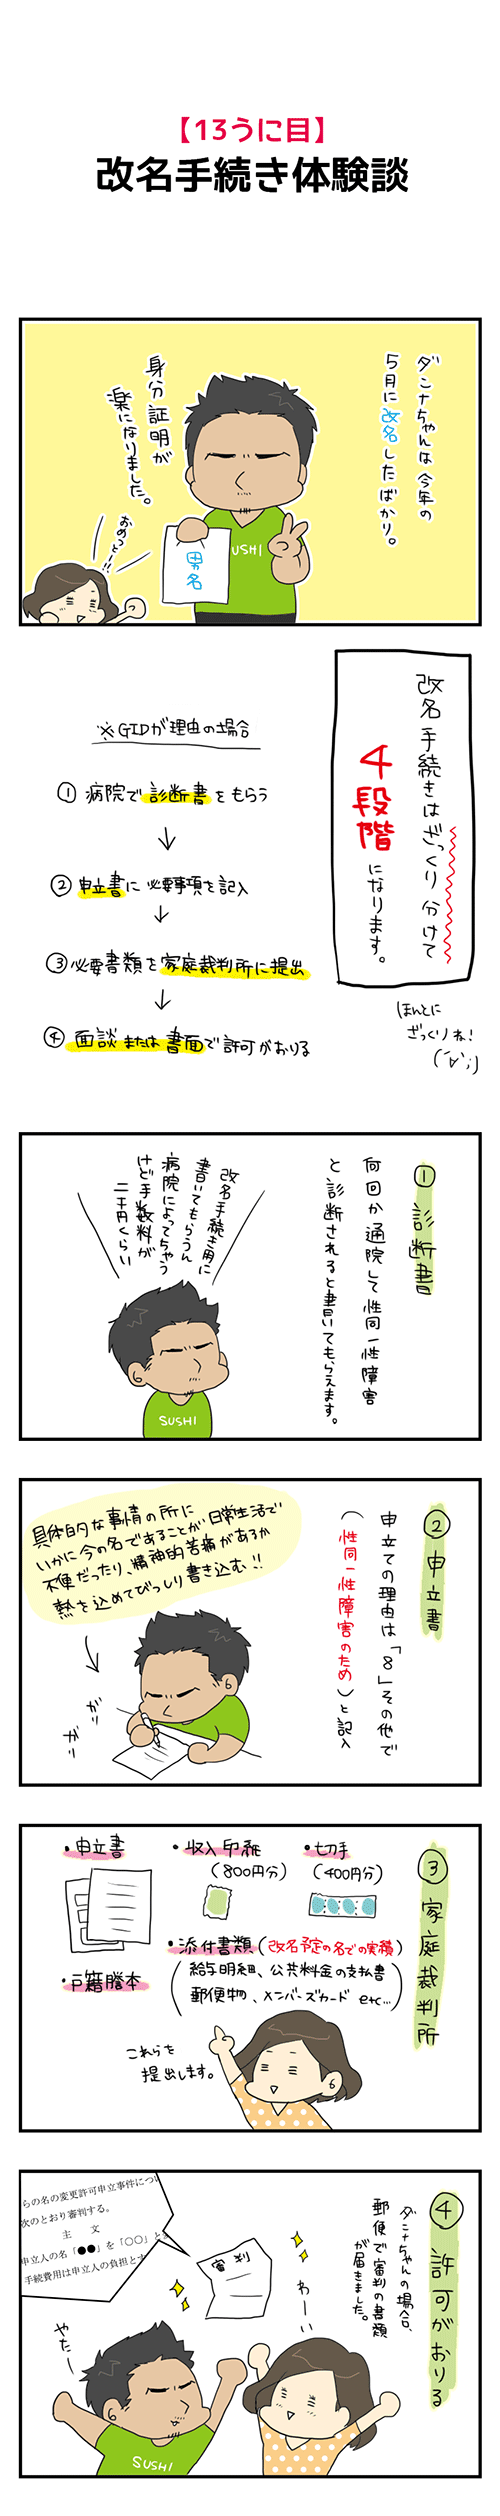 20140912_1.png